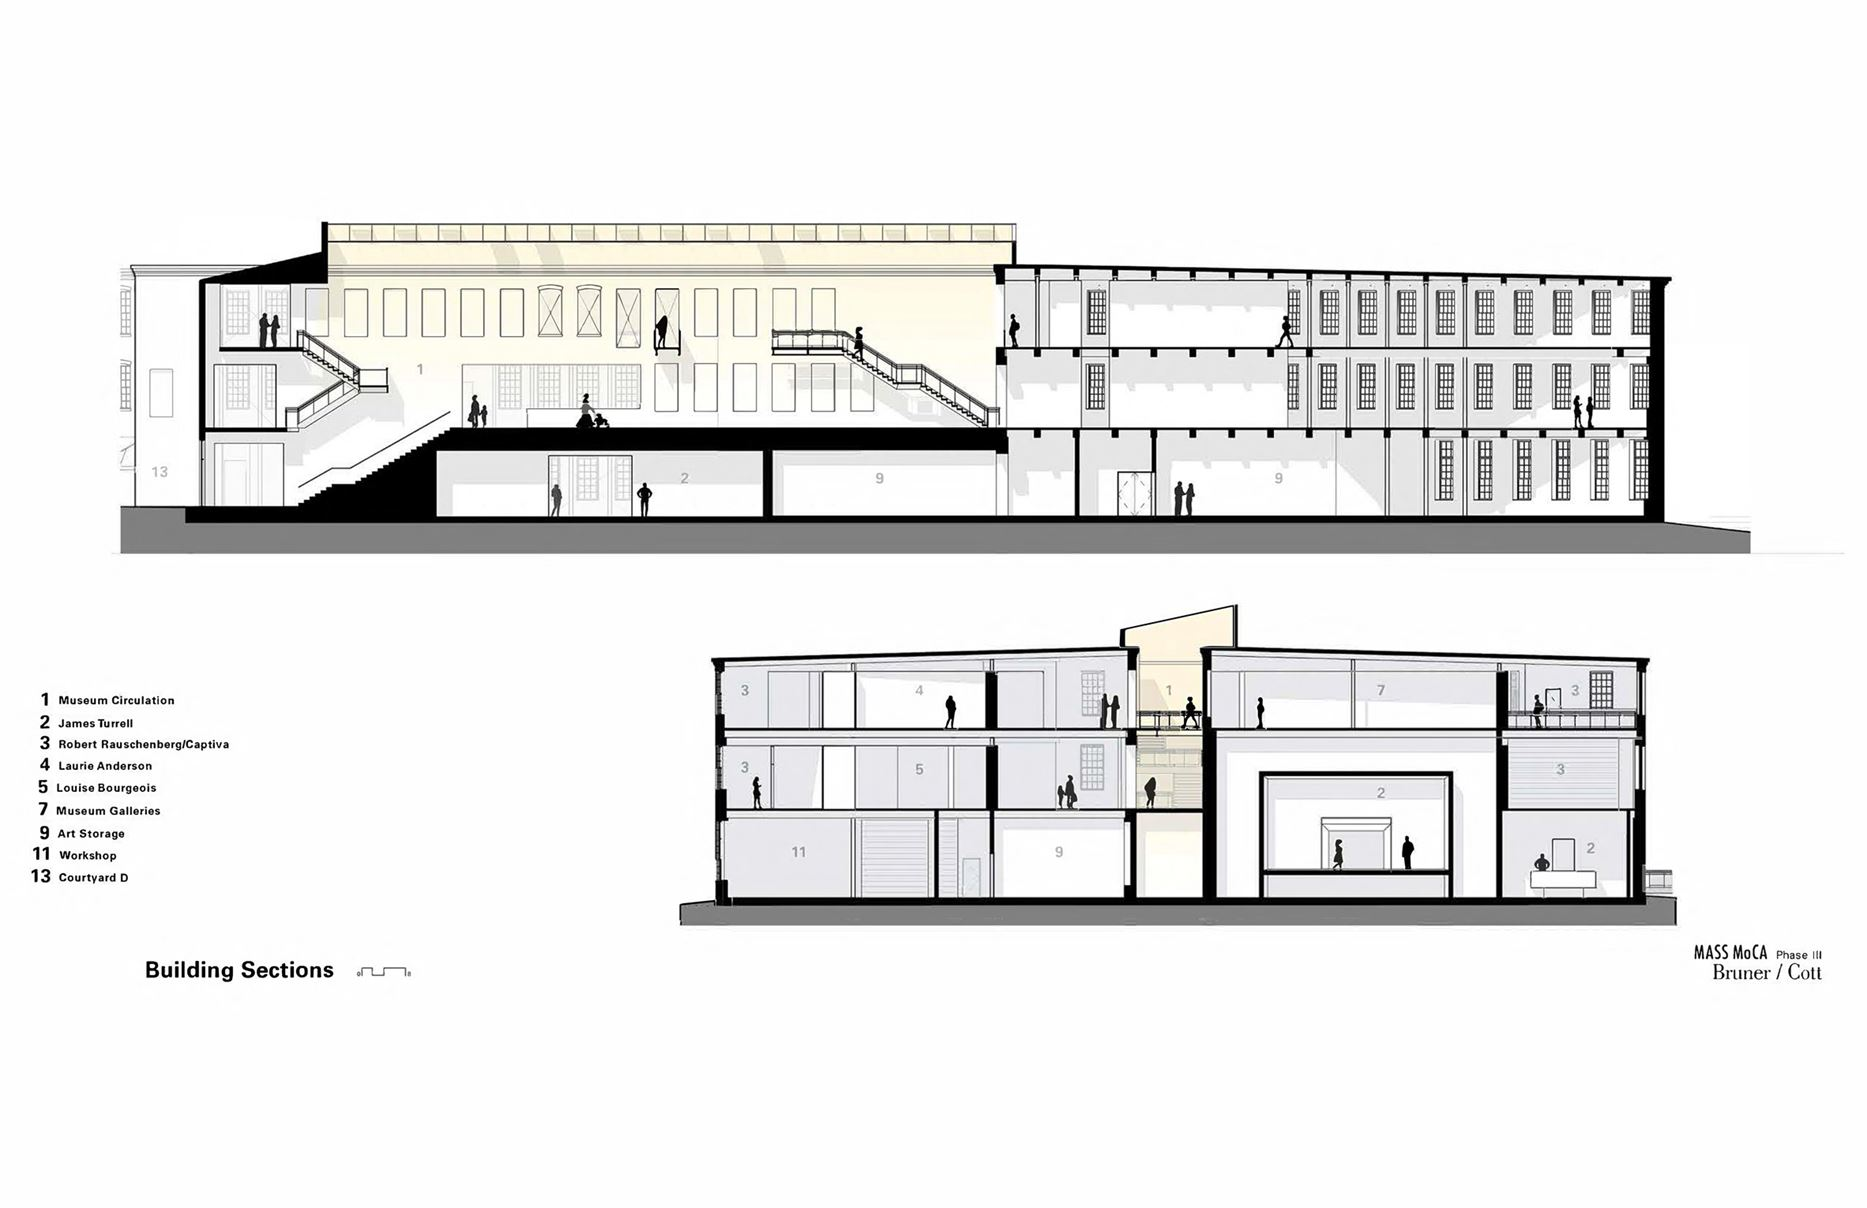 floor-plan-bruner-cott-mass-moca-massachusetts-museum-of-contemporary-art-museum-textile-factory-berkshires6-expansion-renovation_de